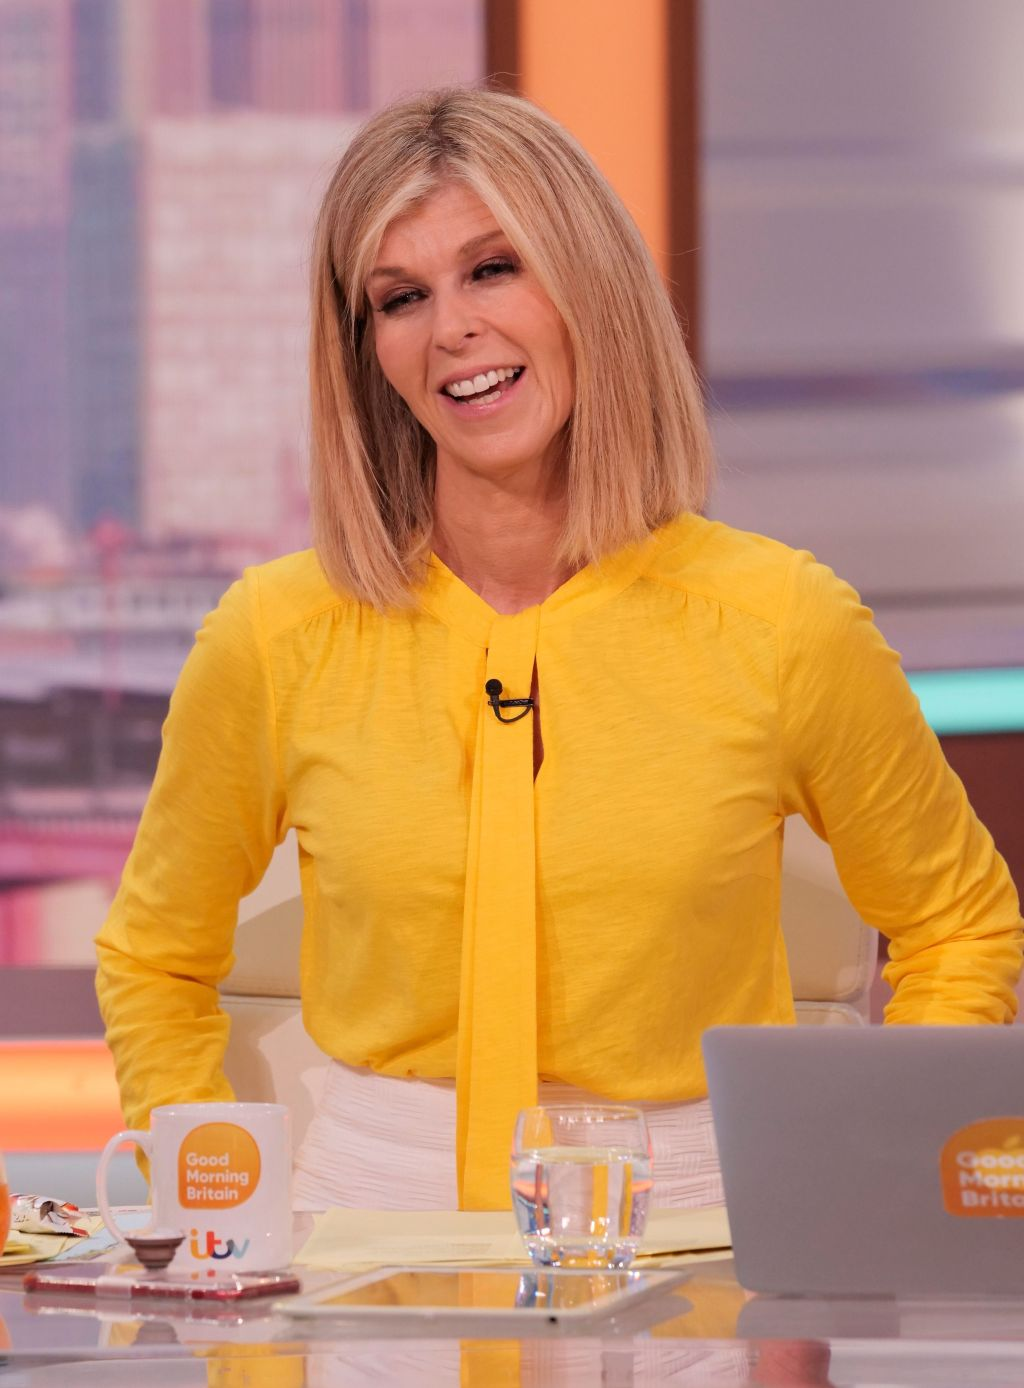 Kate Garraway Announces Short Break From Presenting Good Morning Britain To Spend Time With Family